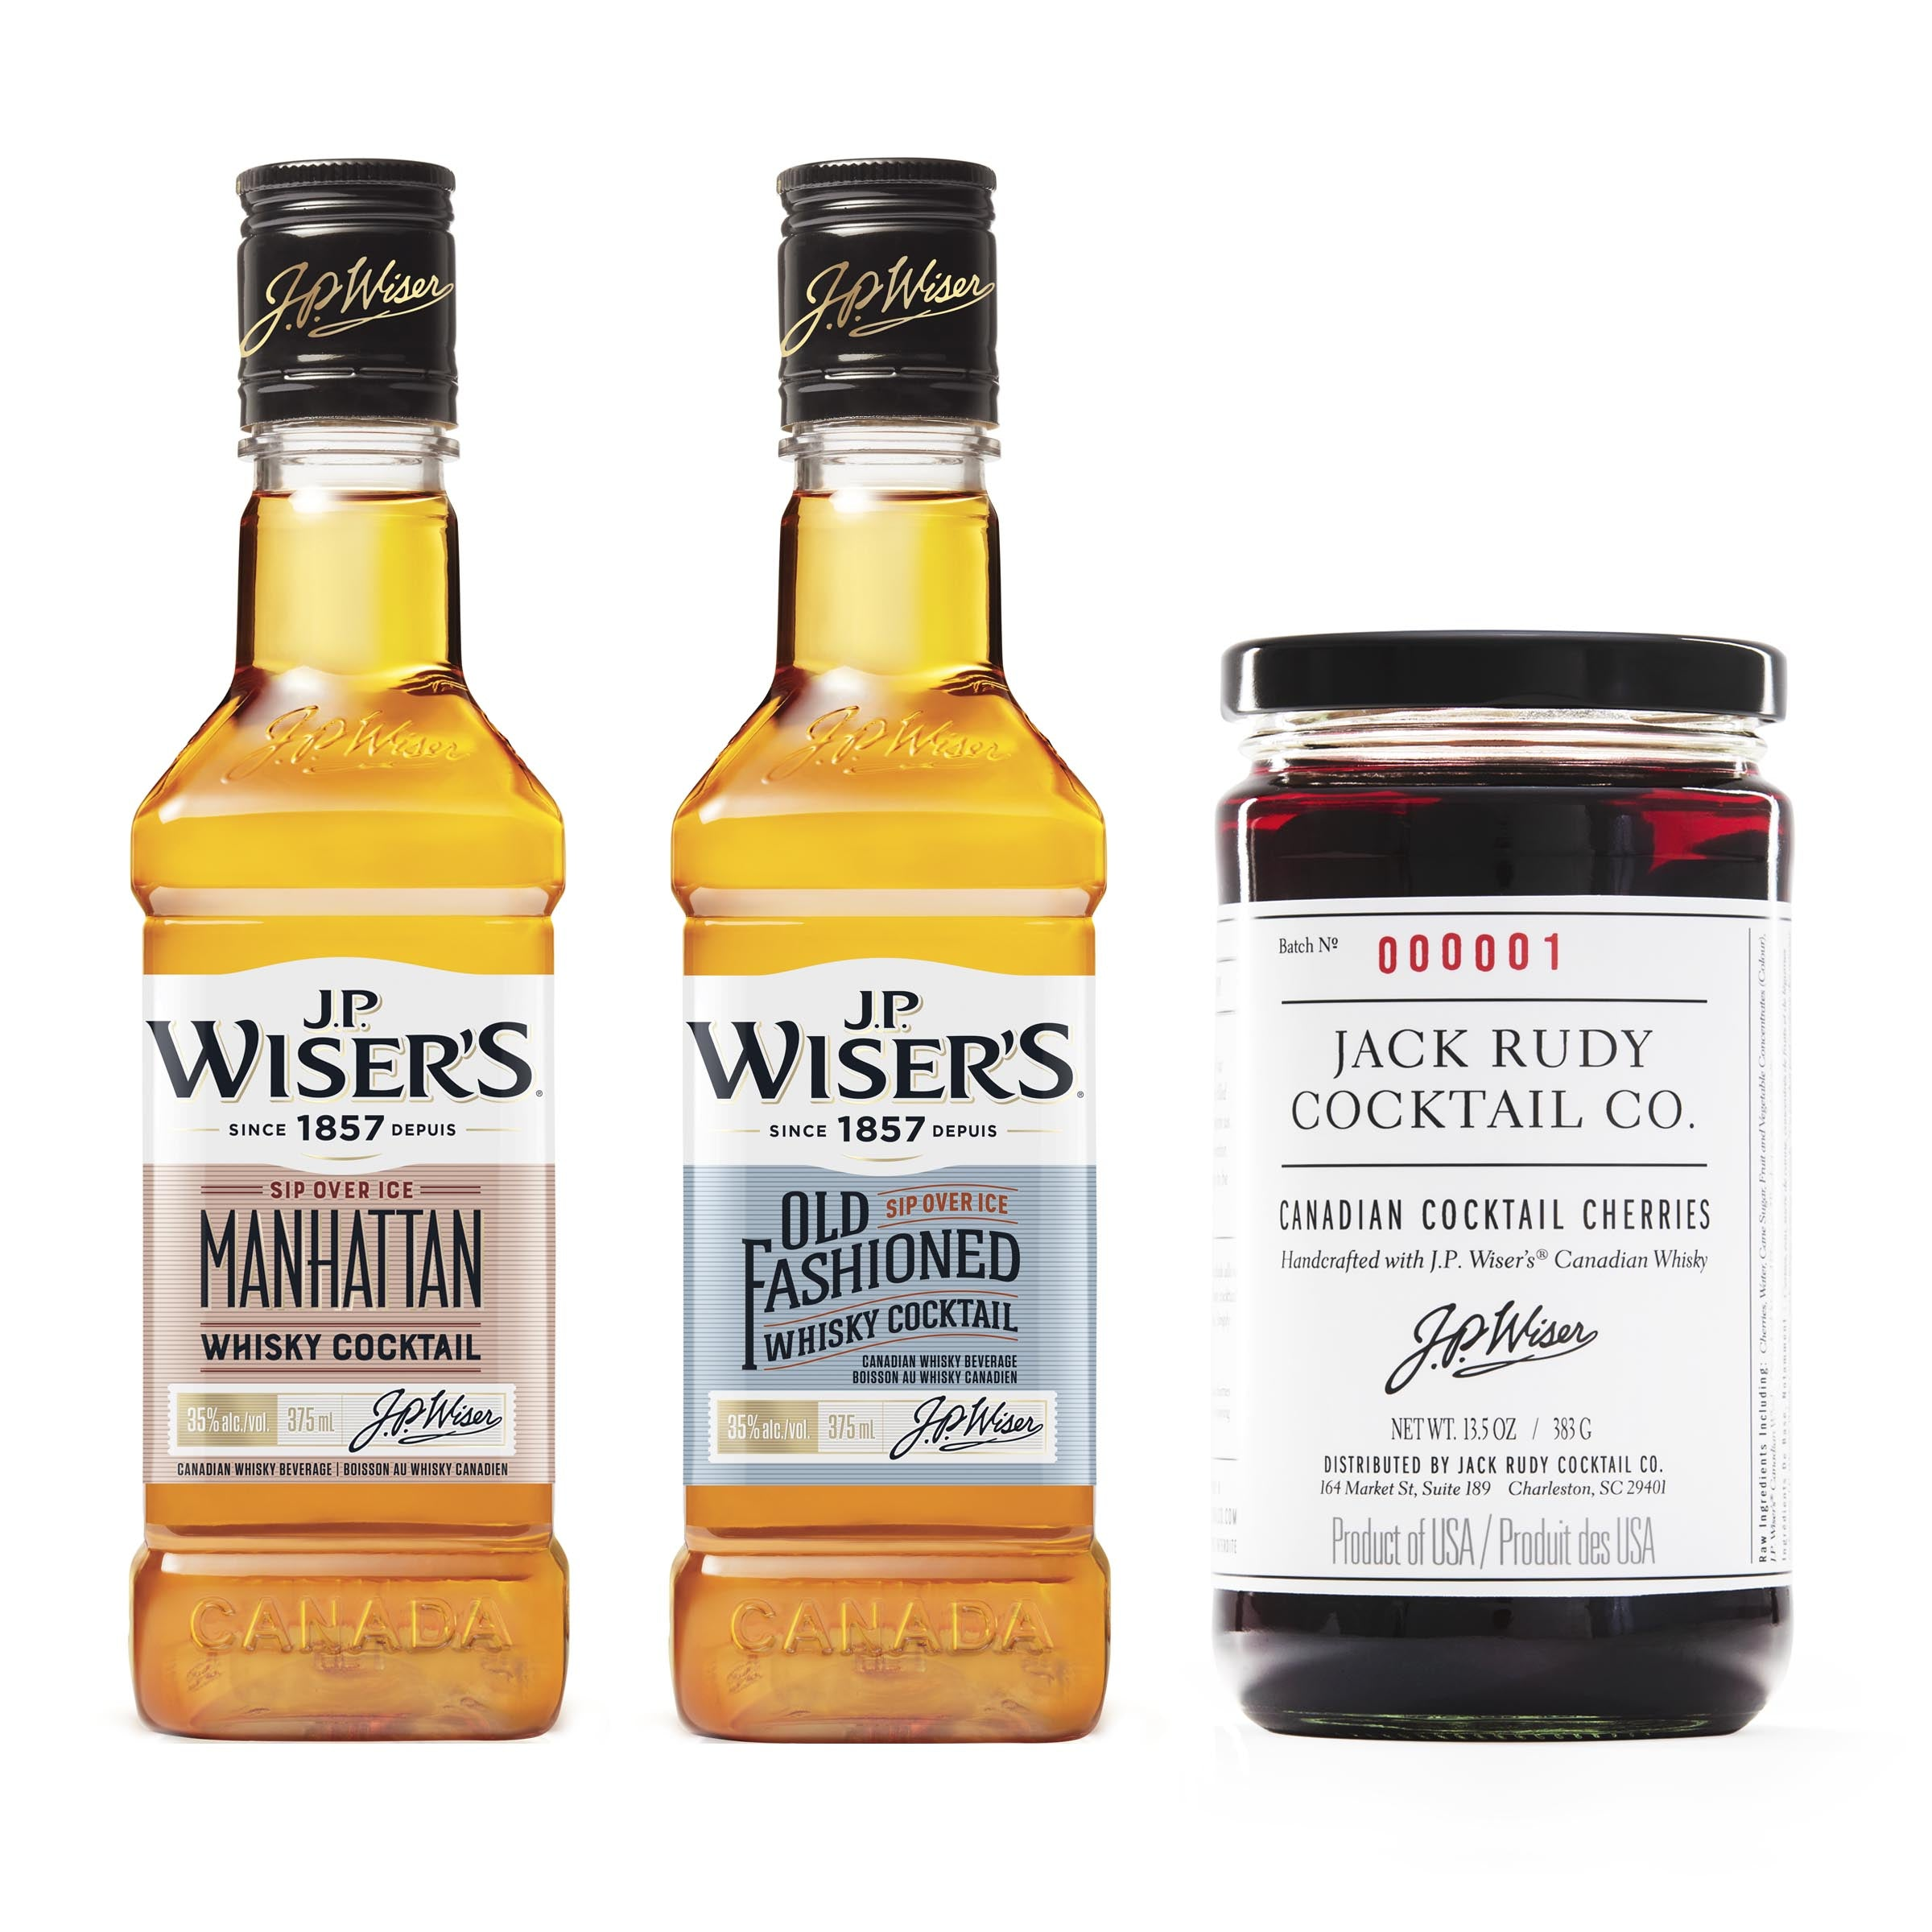 J.P. Wiser's Cocktails & Cherries Gift Set